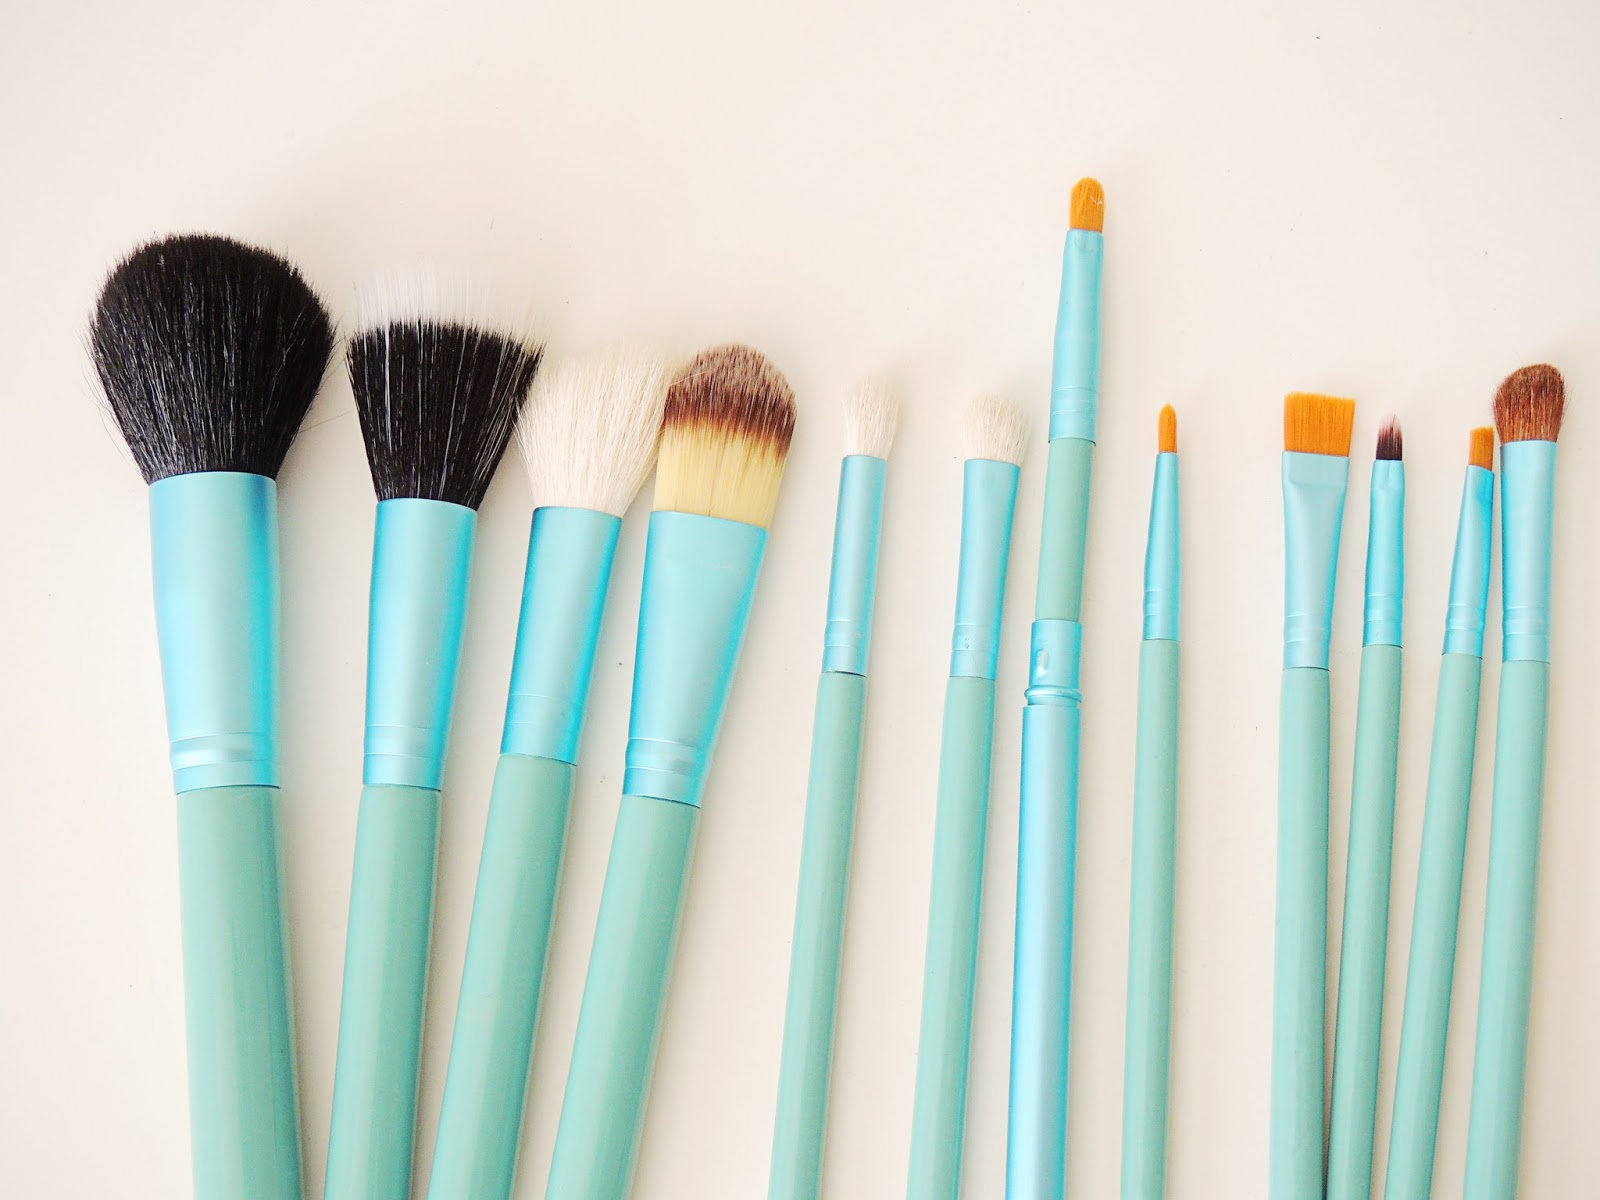 And Here Are The Brushes